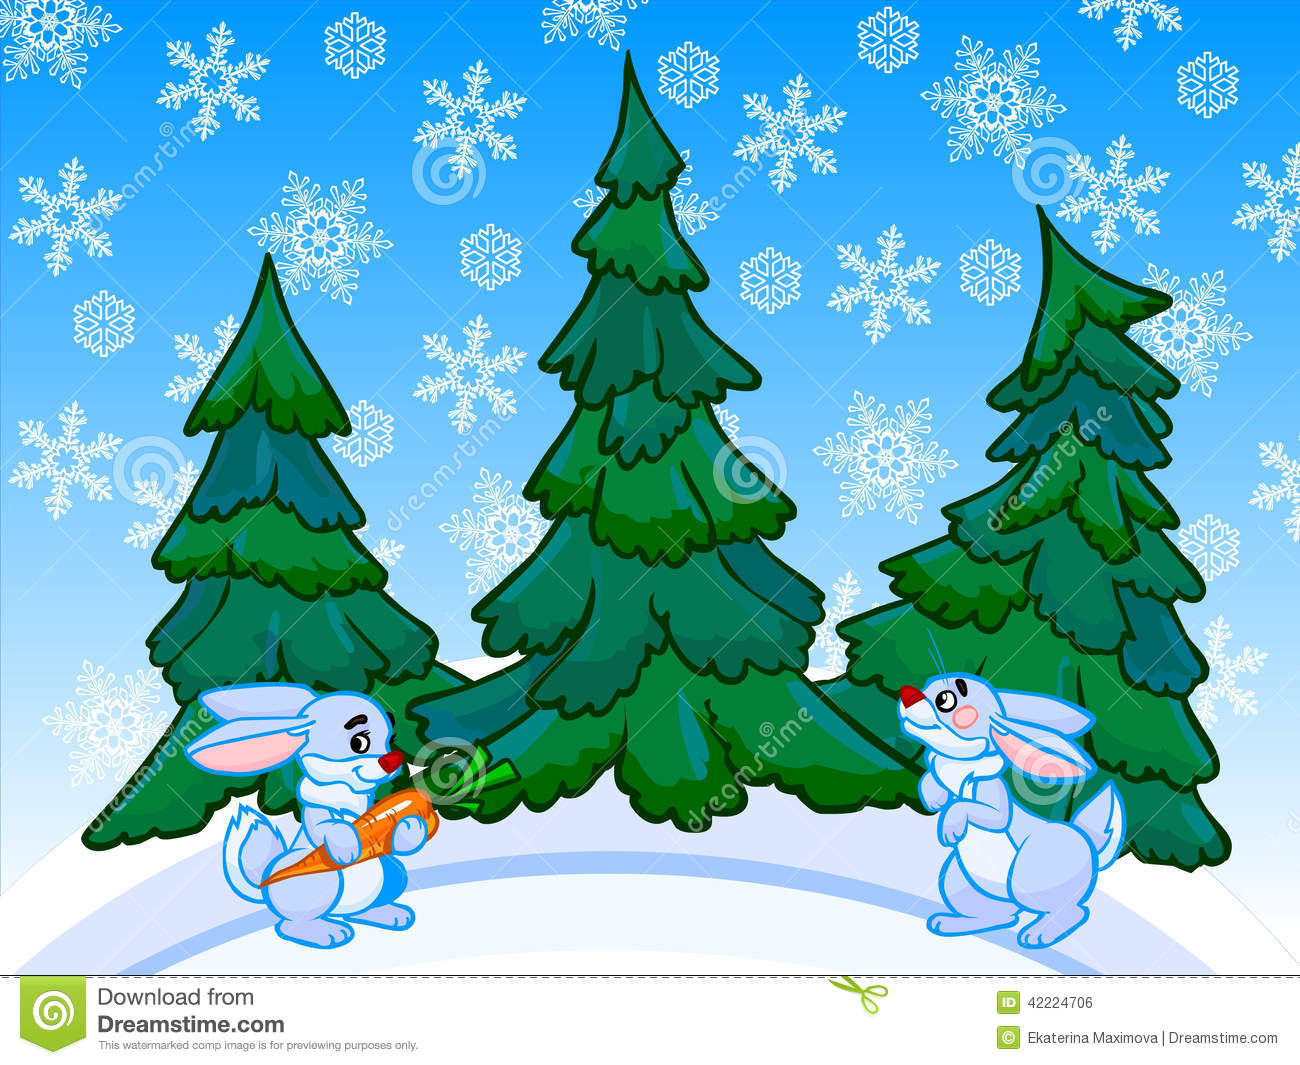 The Cartoon Coniferous Forest With Two Rabbits. Stock Illustration.